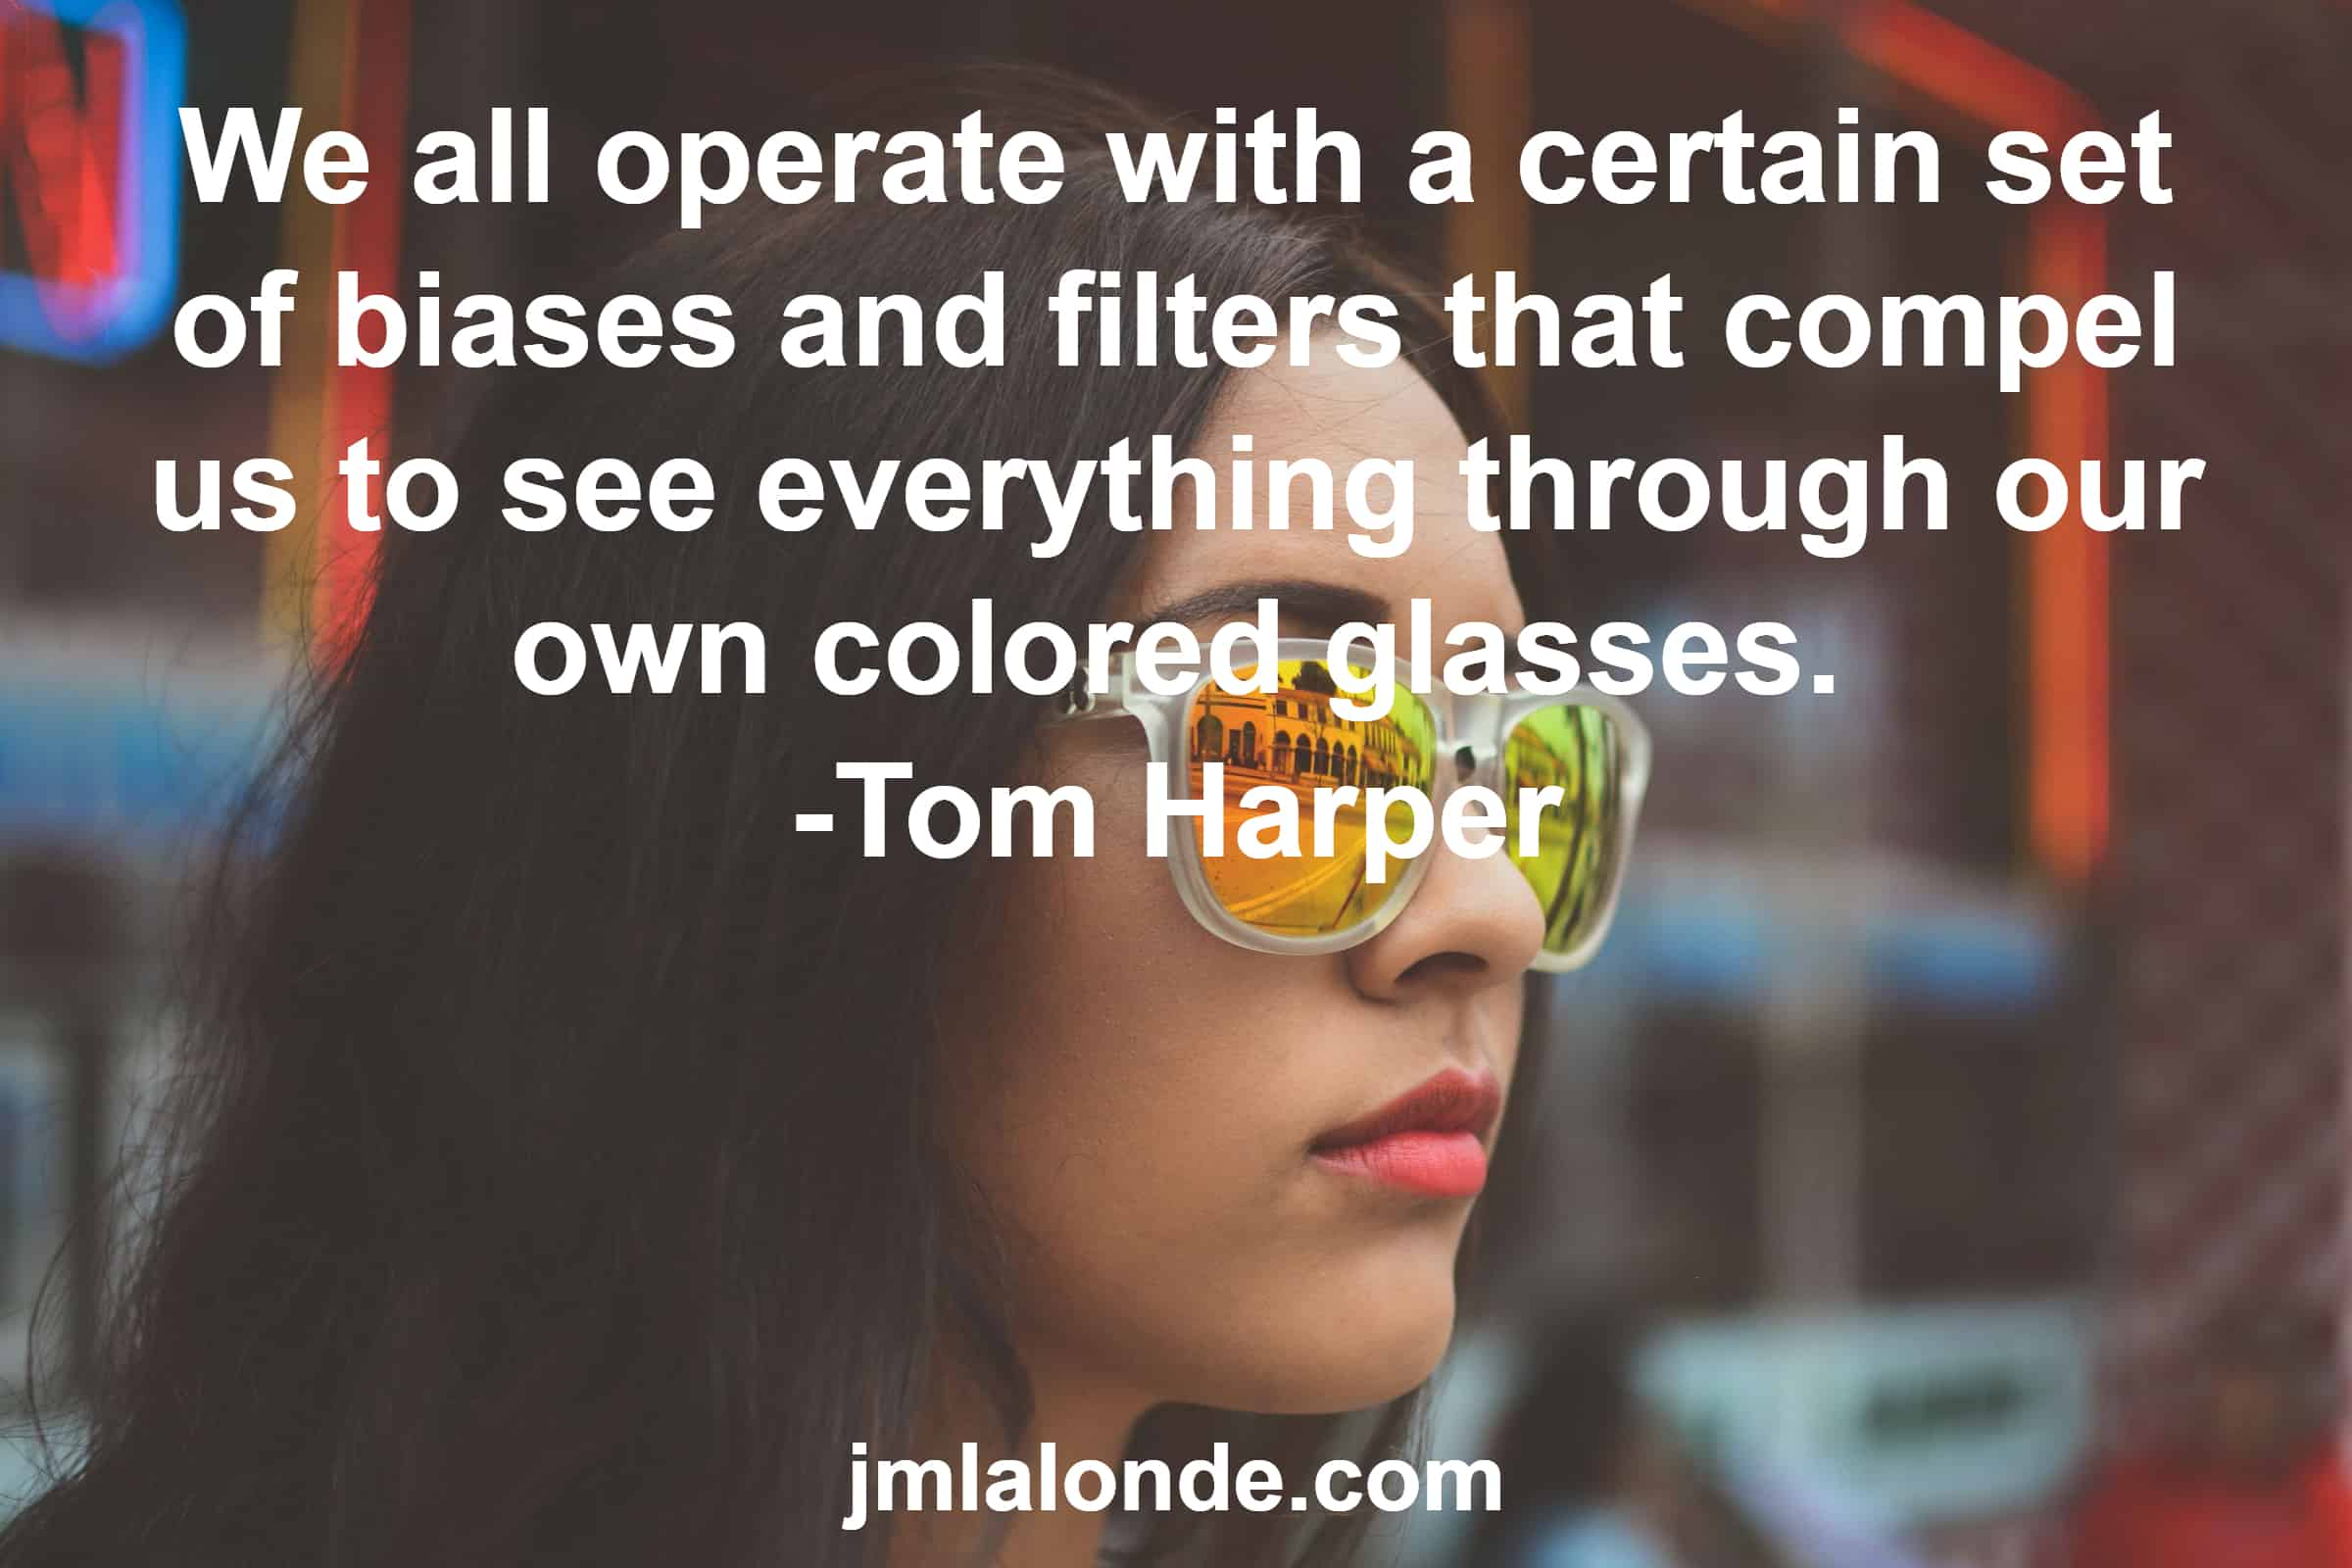 Be aware of the colored glasses you view reality through